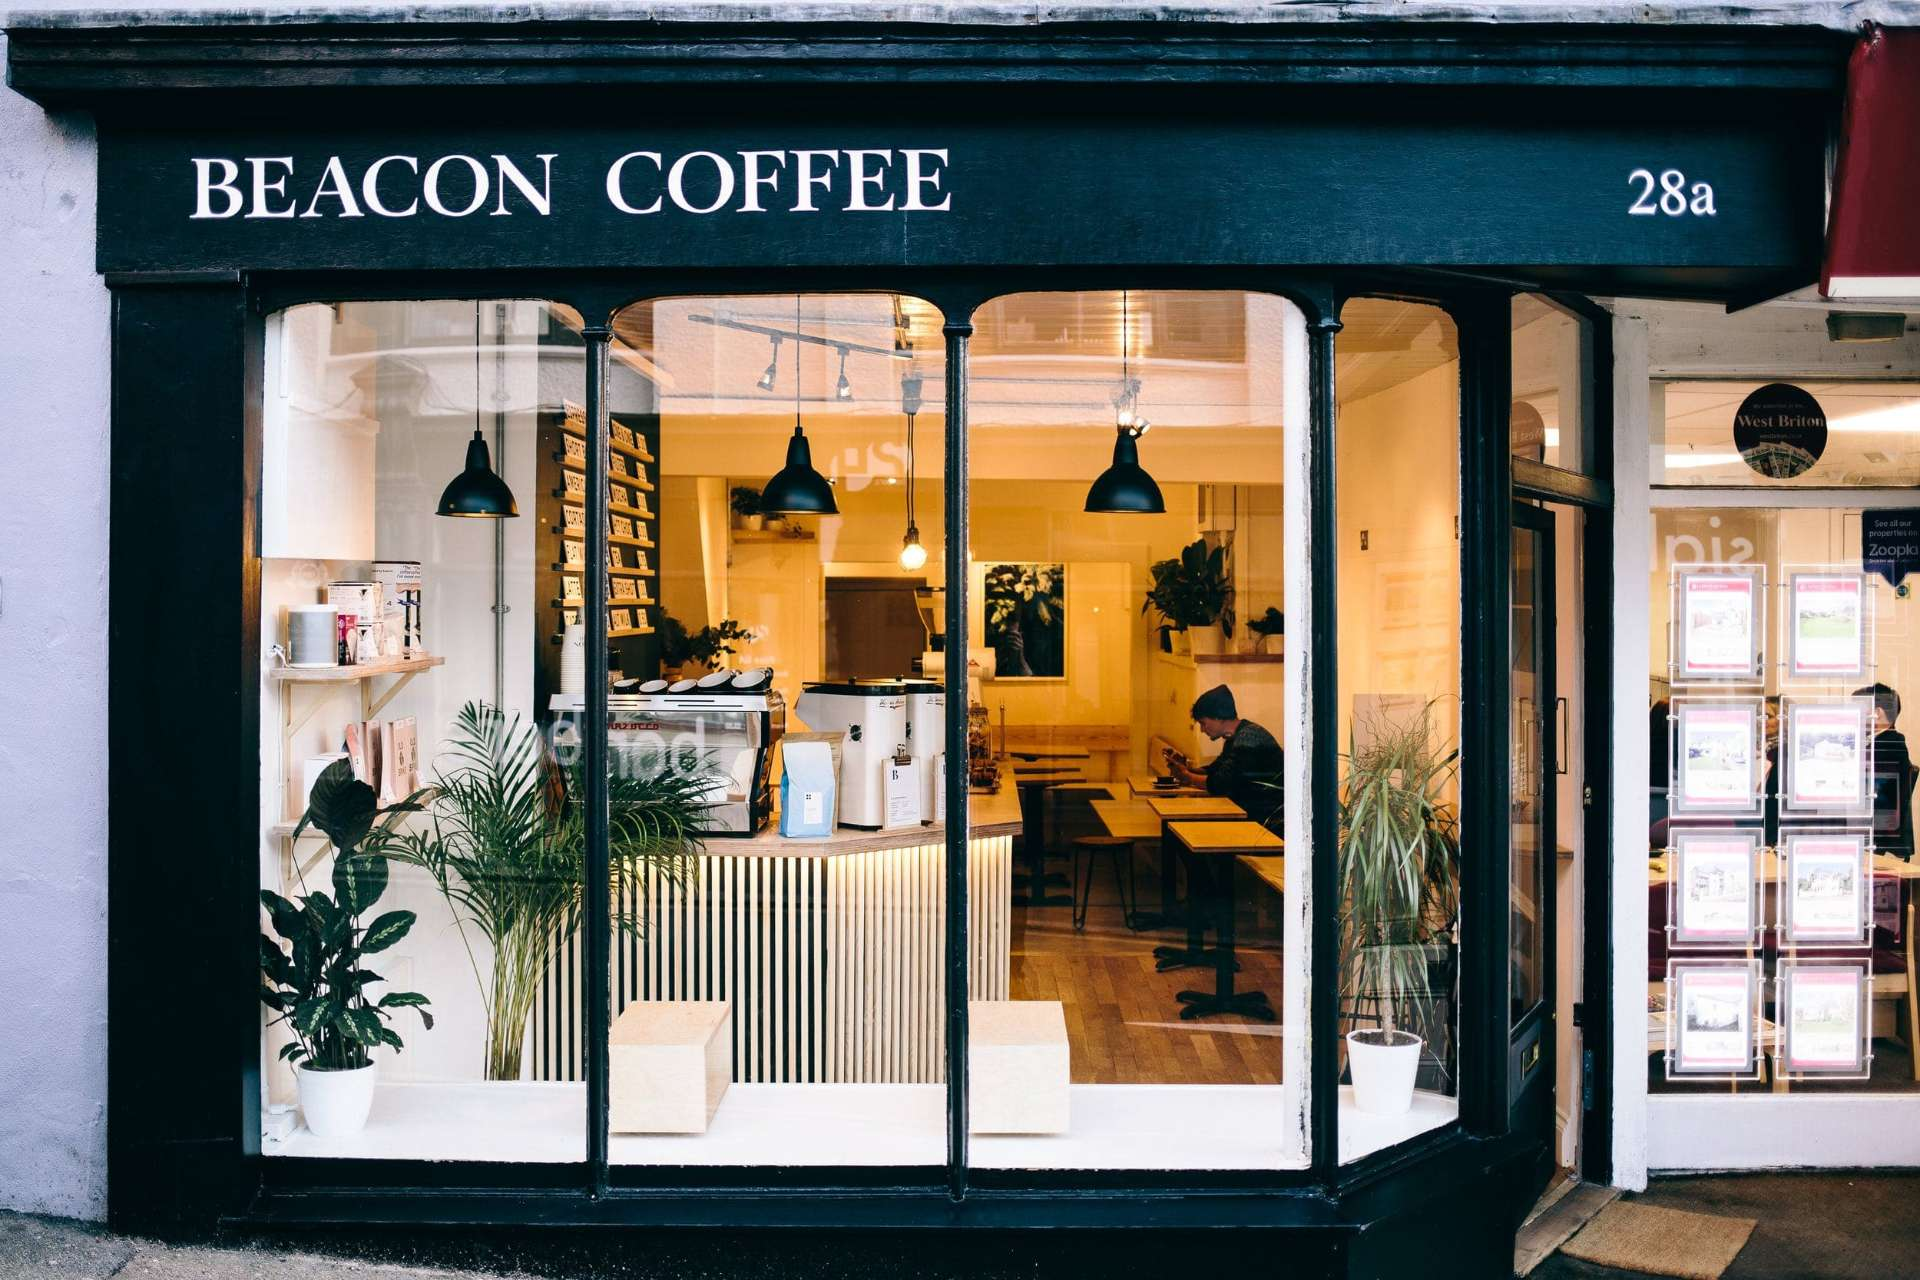 exterior-of-coffee-shop-with-man-working-at-laptop-at-table-beacon-coffee-places-to-eat-in-falmouth